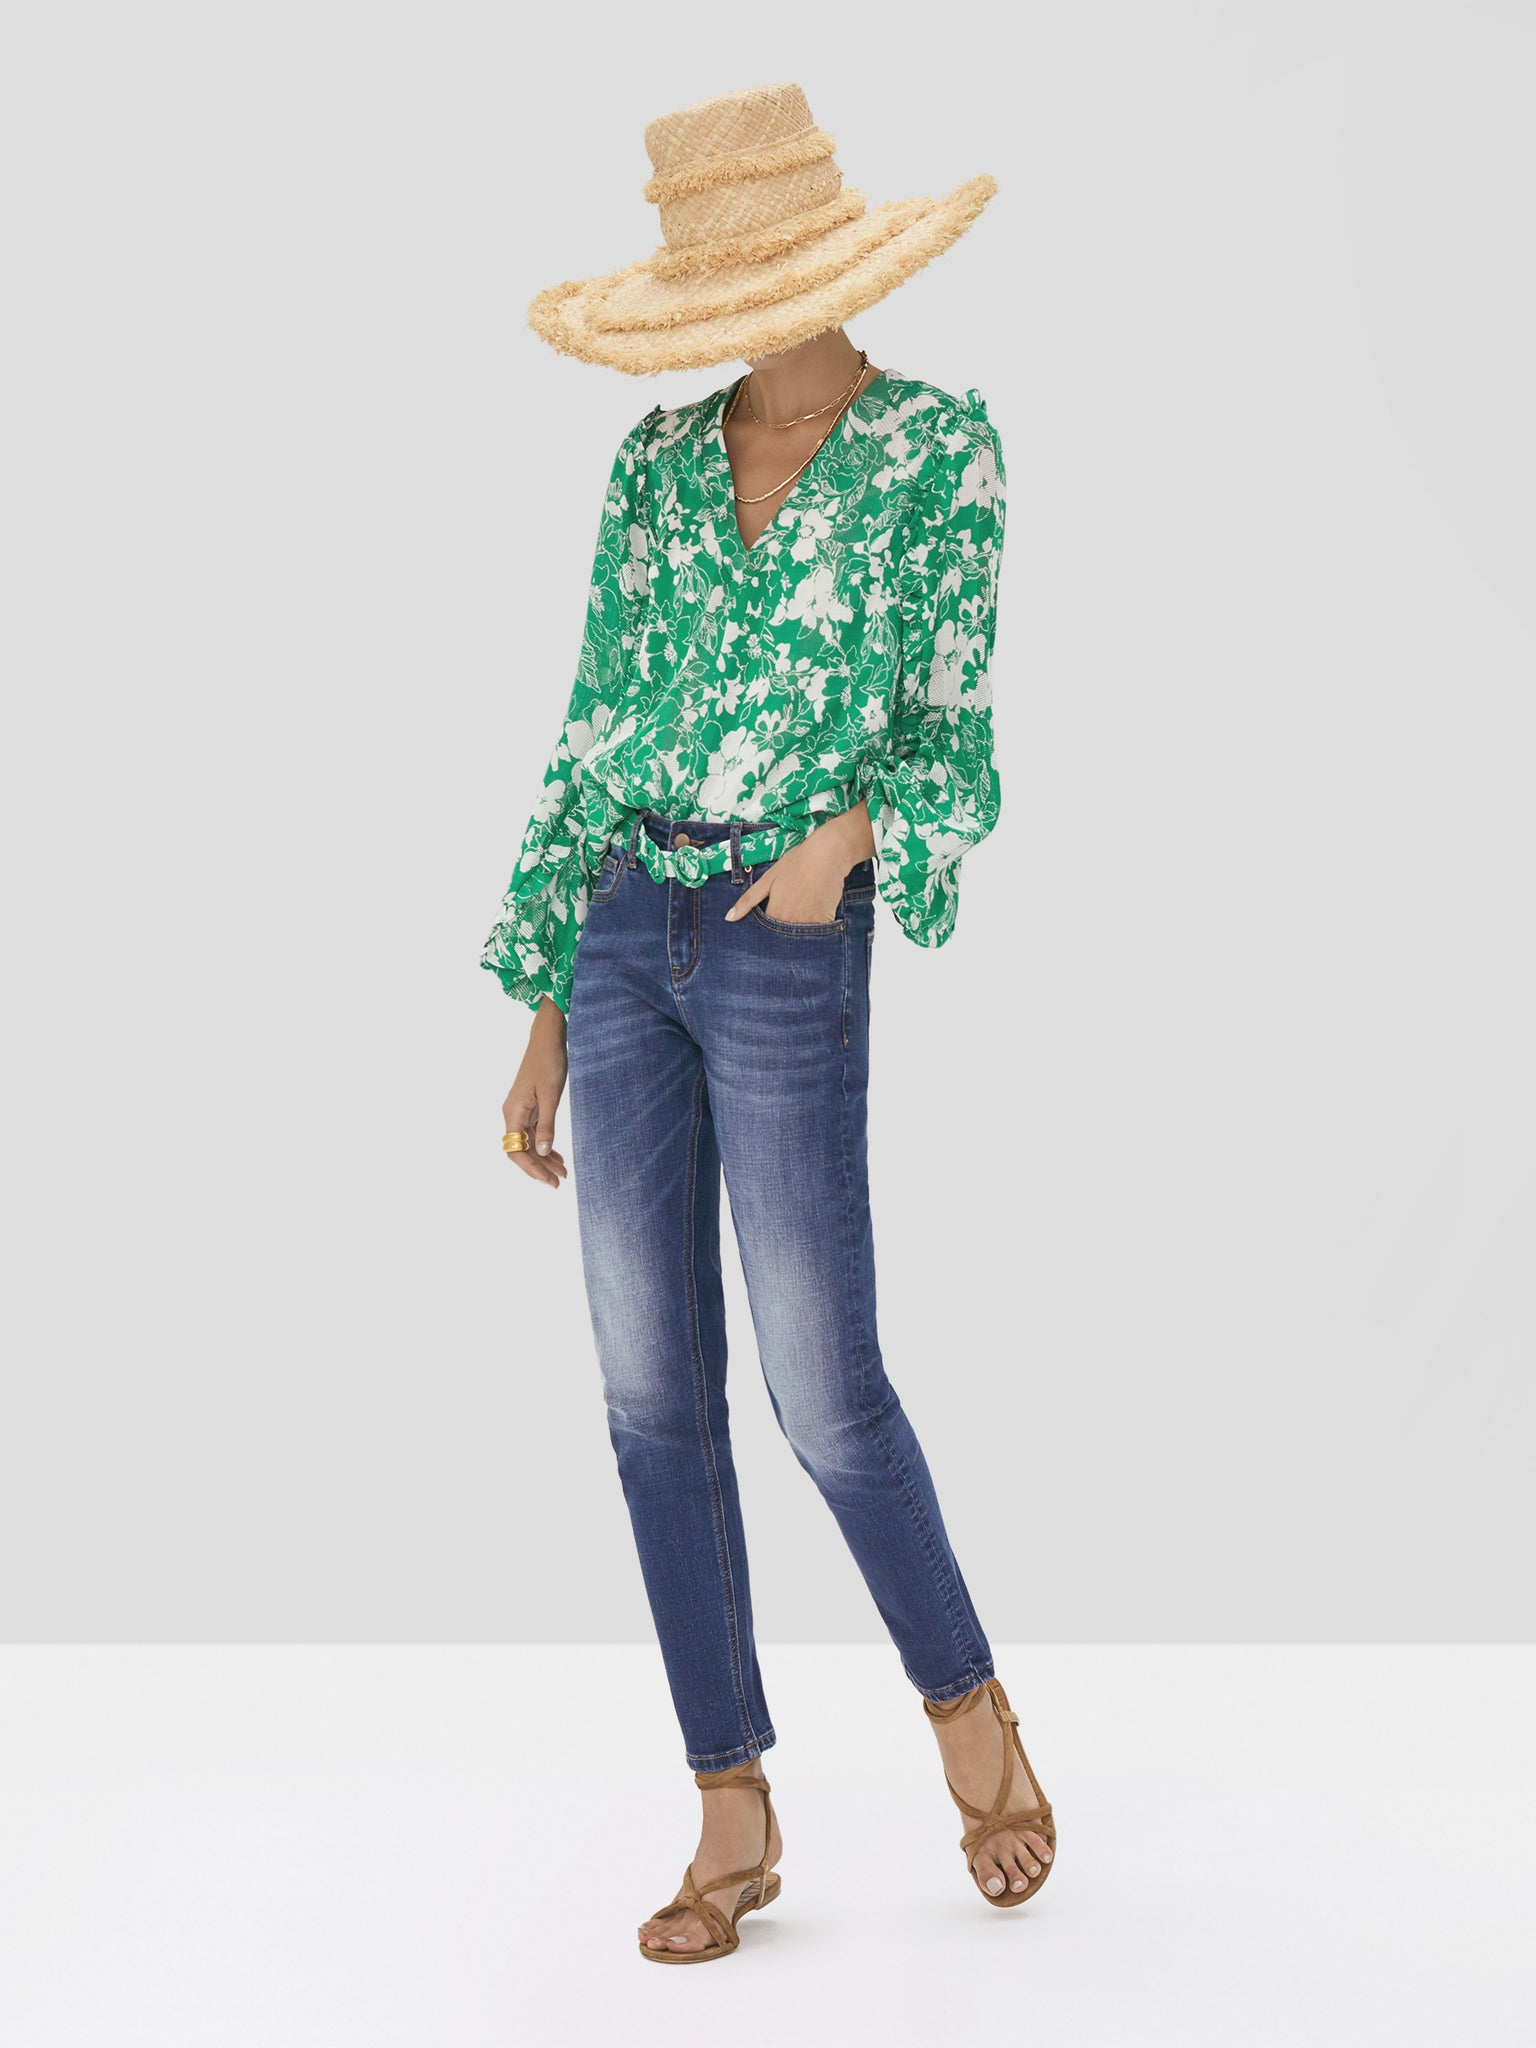 The Idir Top in Emerald Floral from the Spring Summer 2020 Ready To Wear Collection.